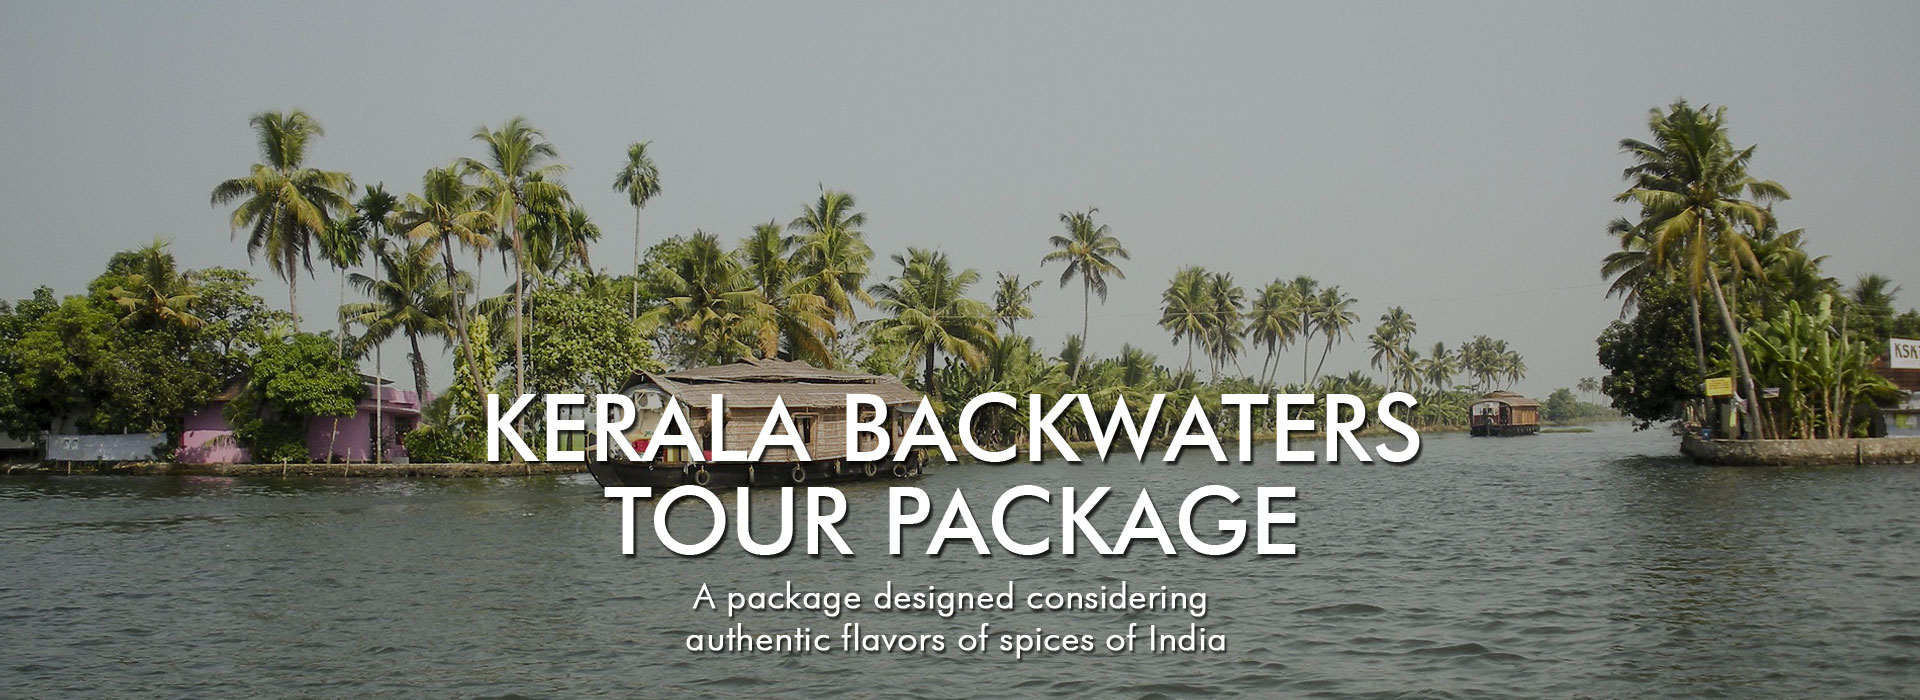 Kerala-Backwaters-Tour-Package-slide